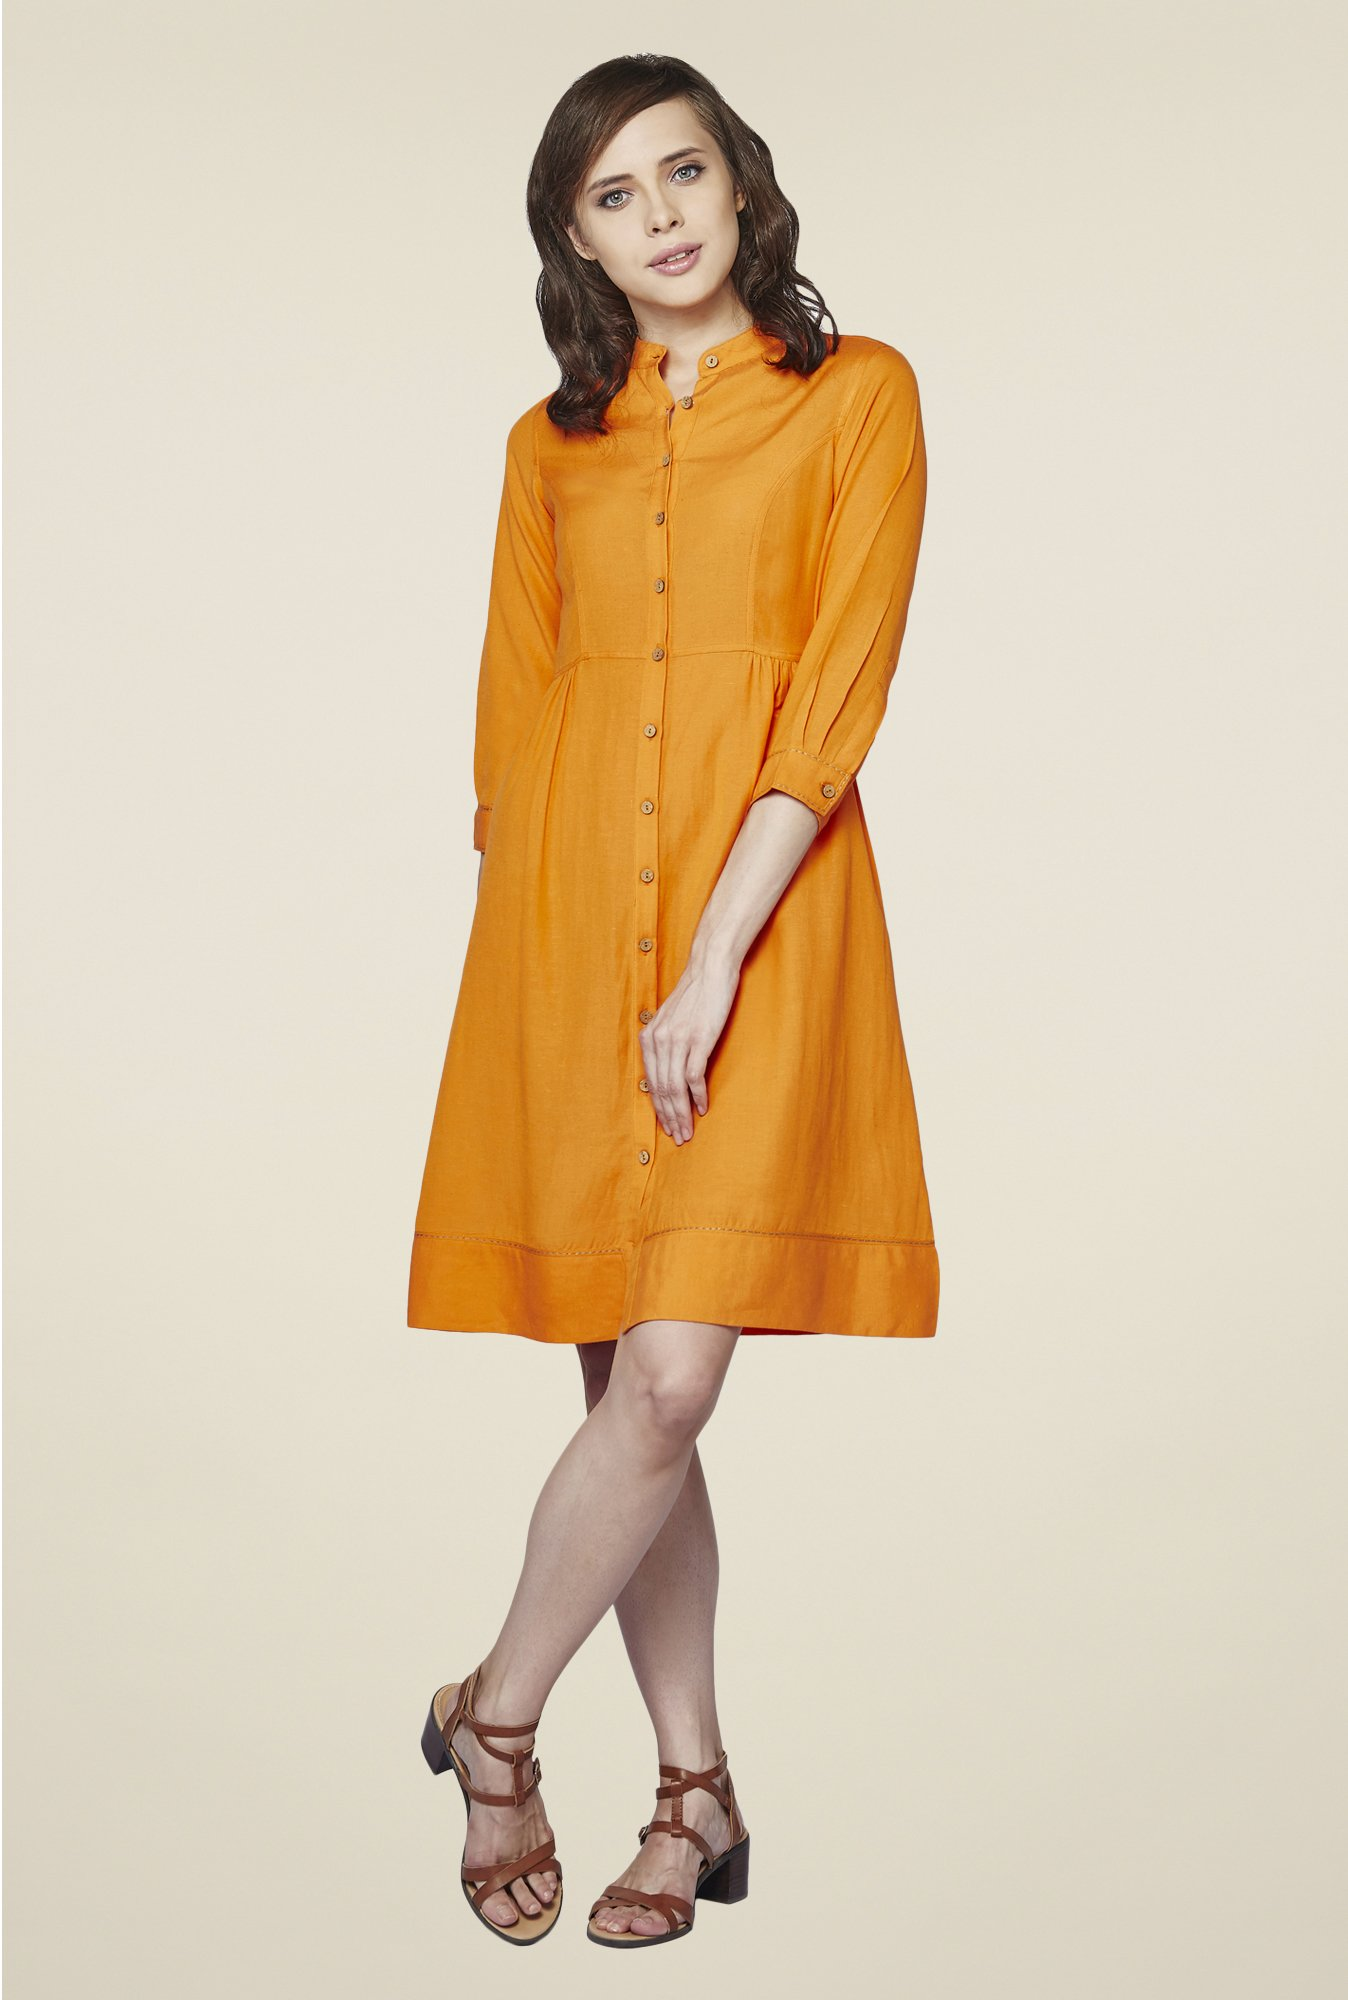 AND Orange Solid Dress